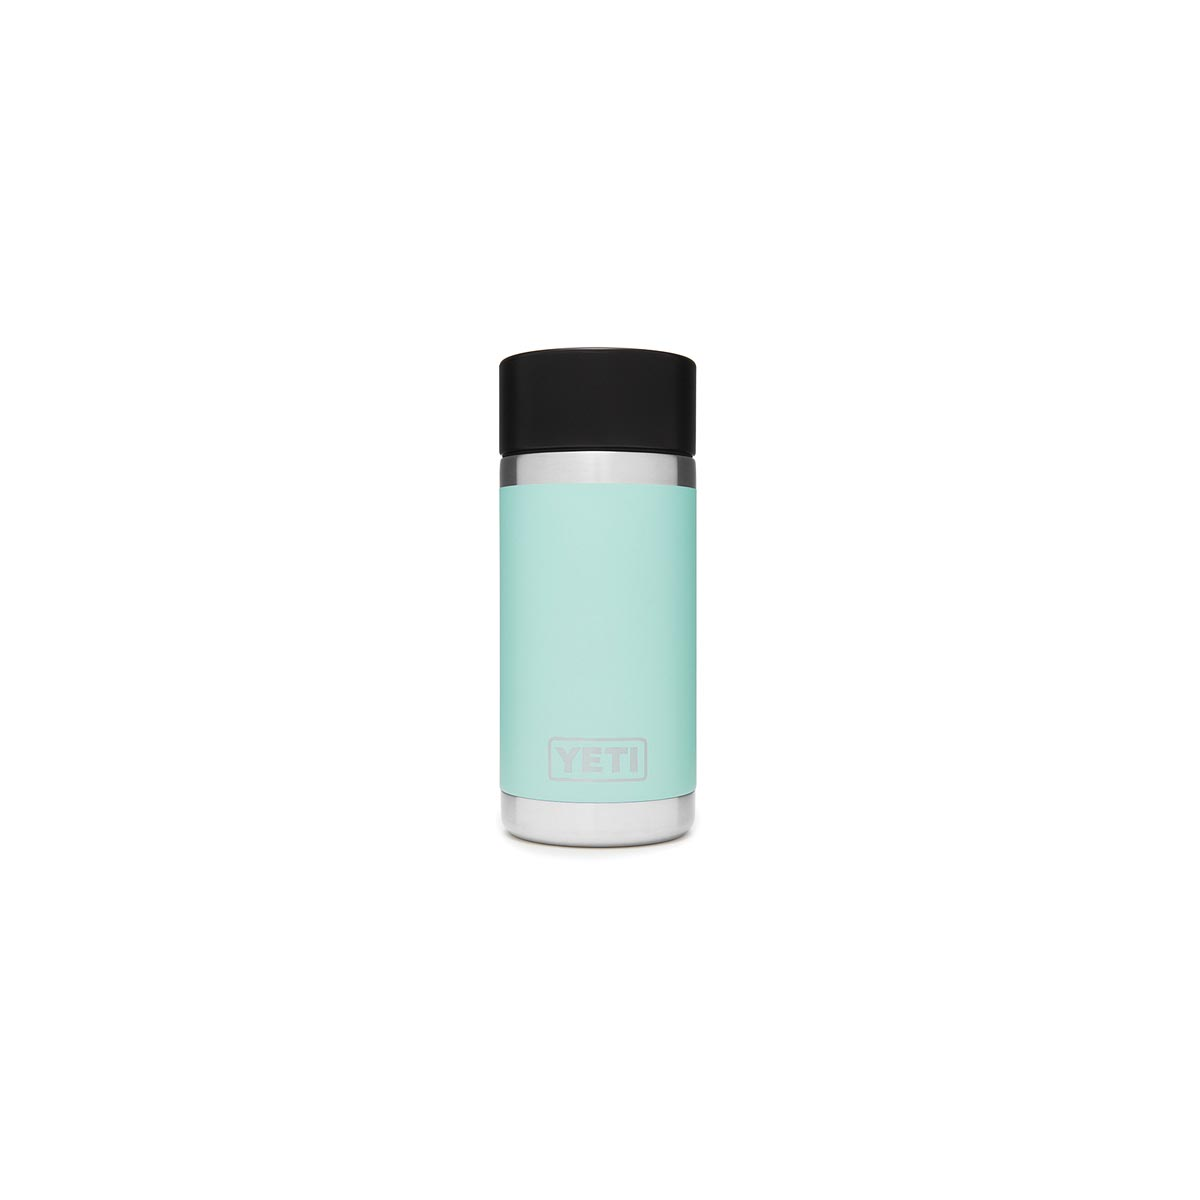 Picture of YETI Rambler 21071050004 Bottle with Hotshot Cap, 12 oz Capacity, Stainless Steel, Seafoam